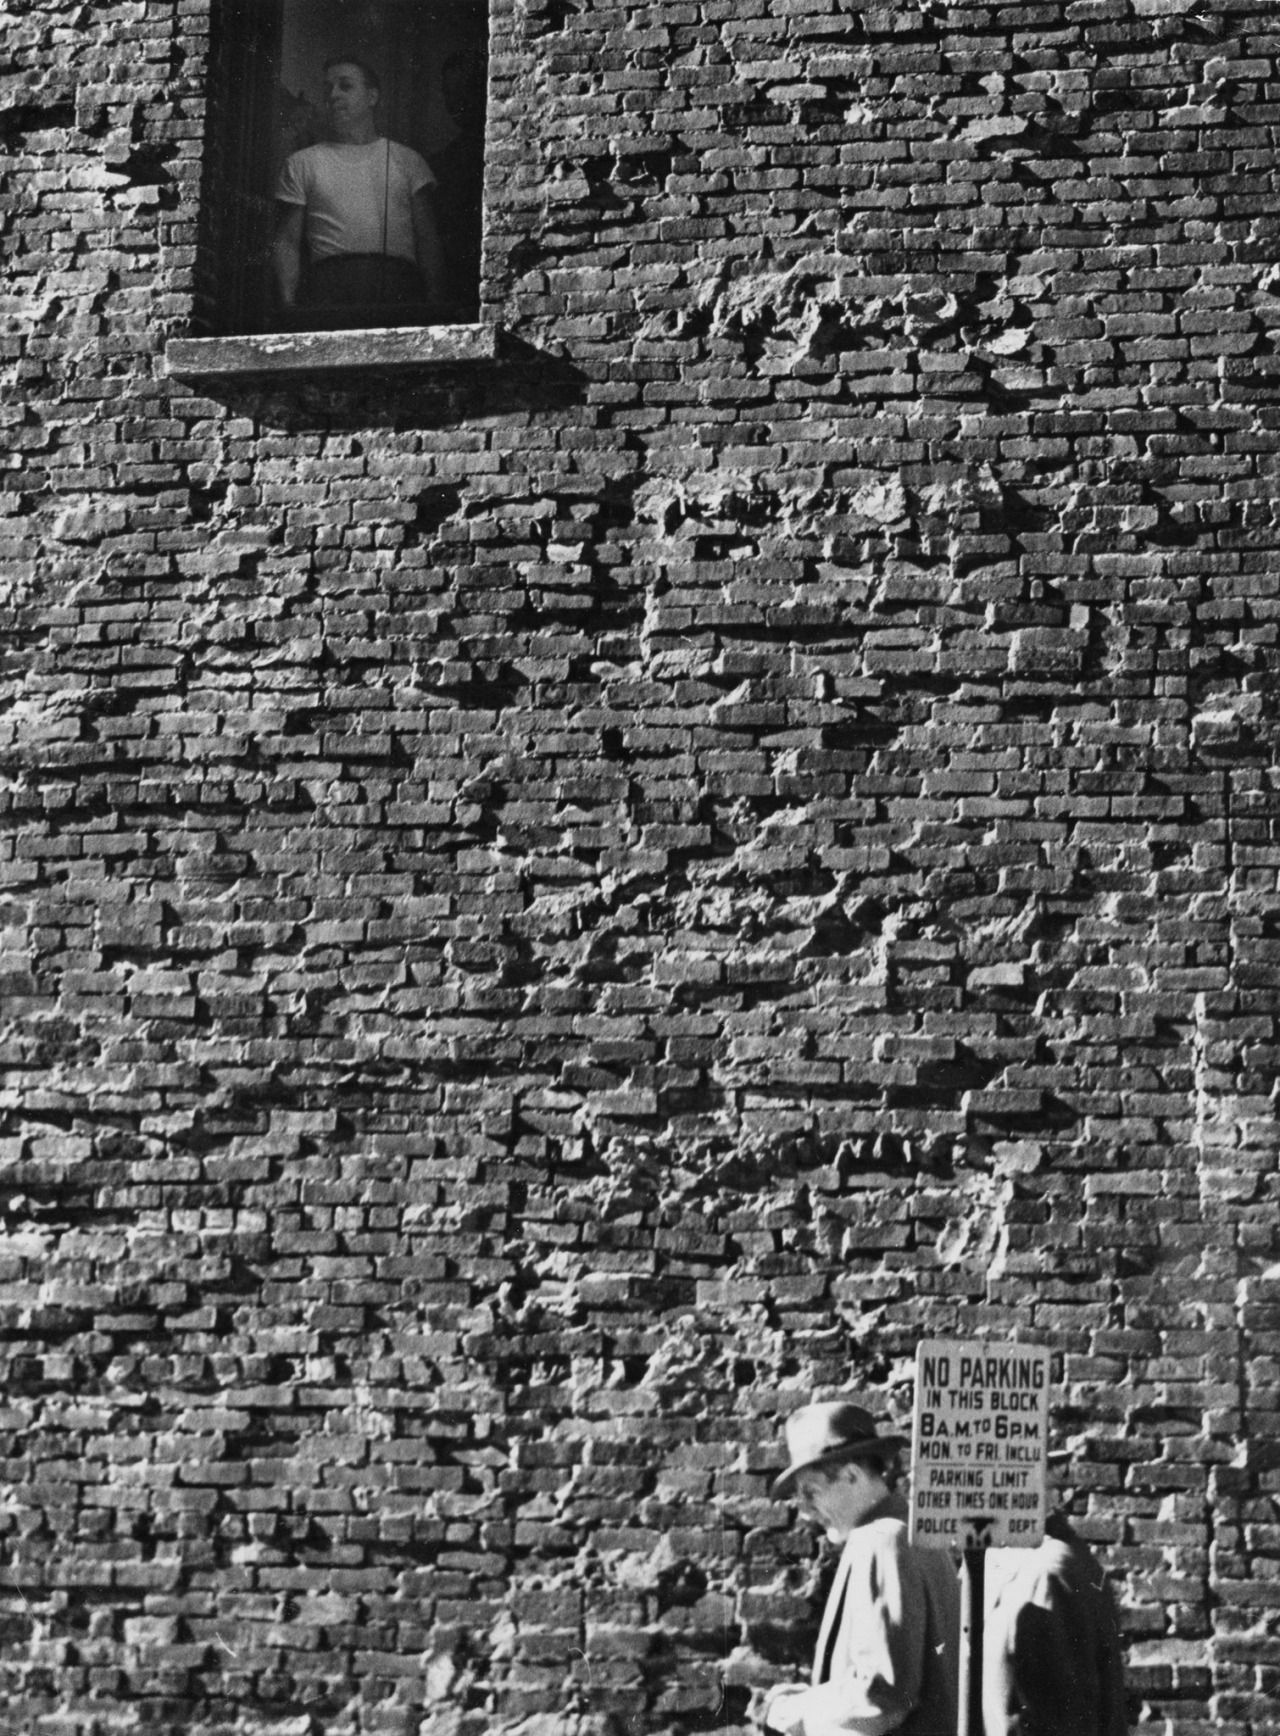 From his window perch andre kertesz captured candid moments where his subjects were unaware the master photographer was watching them